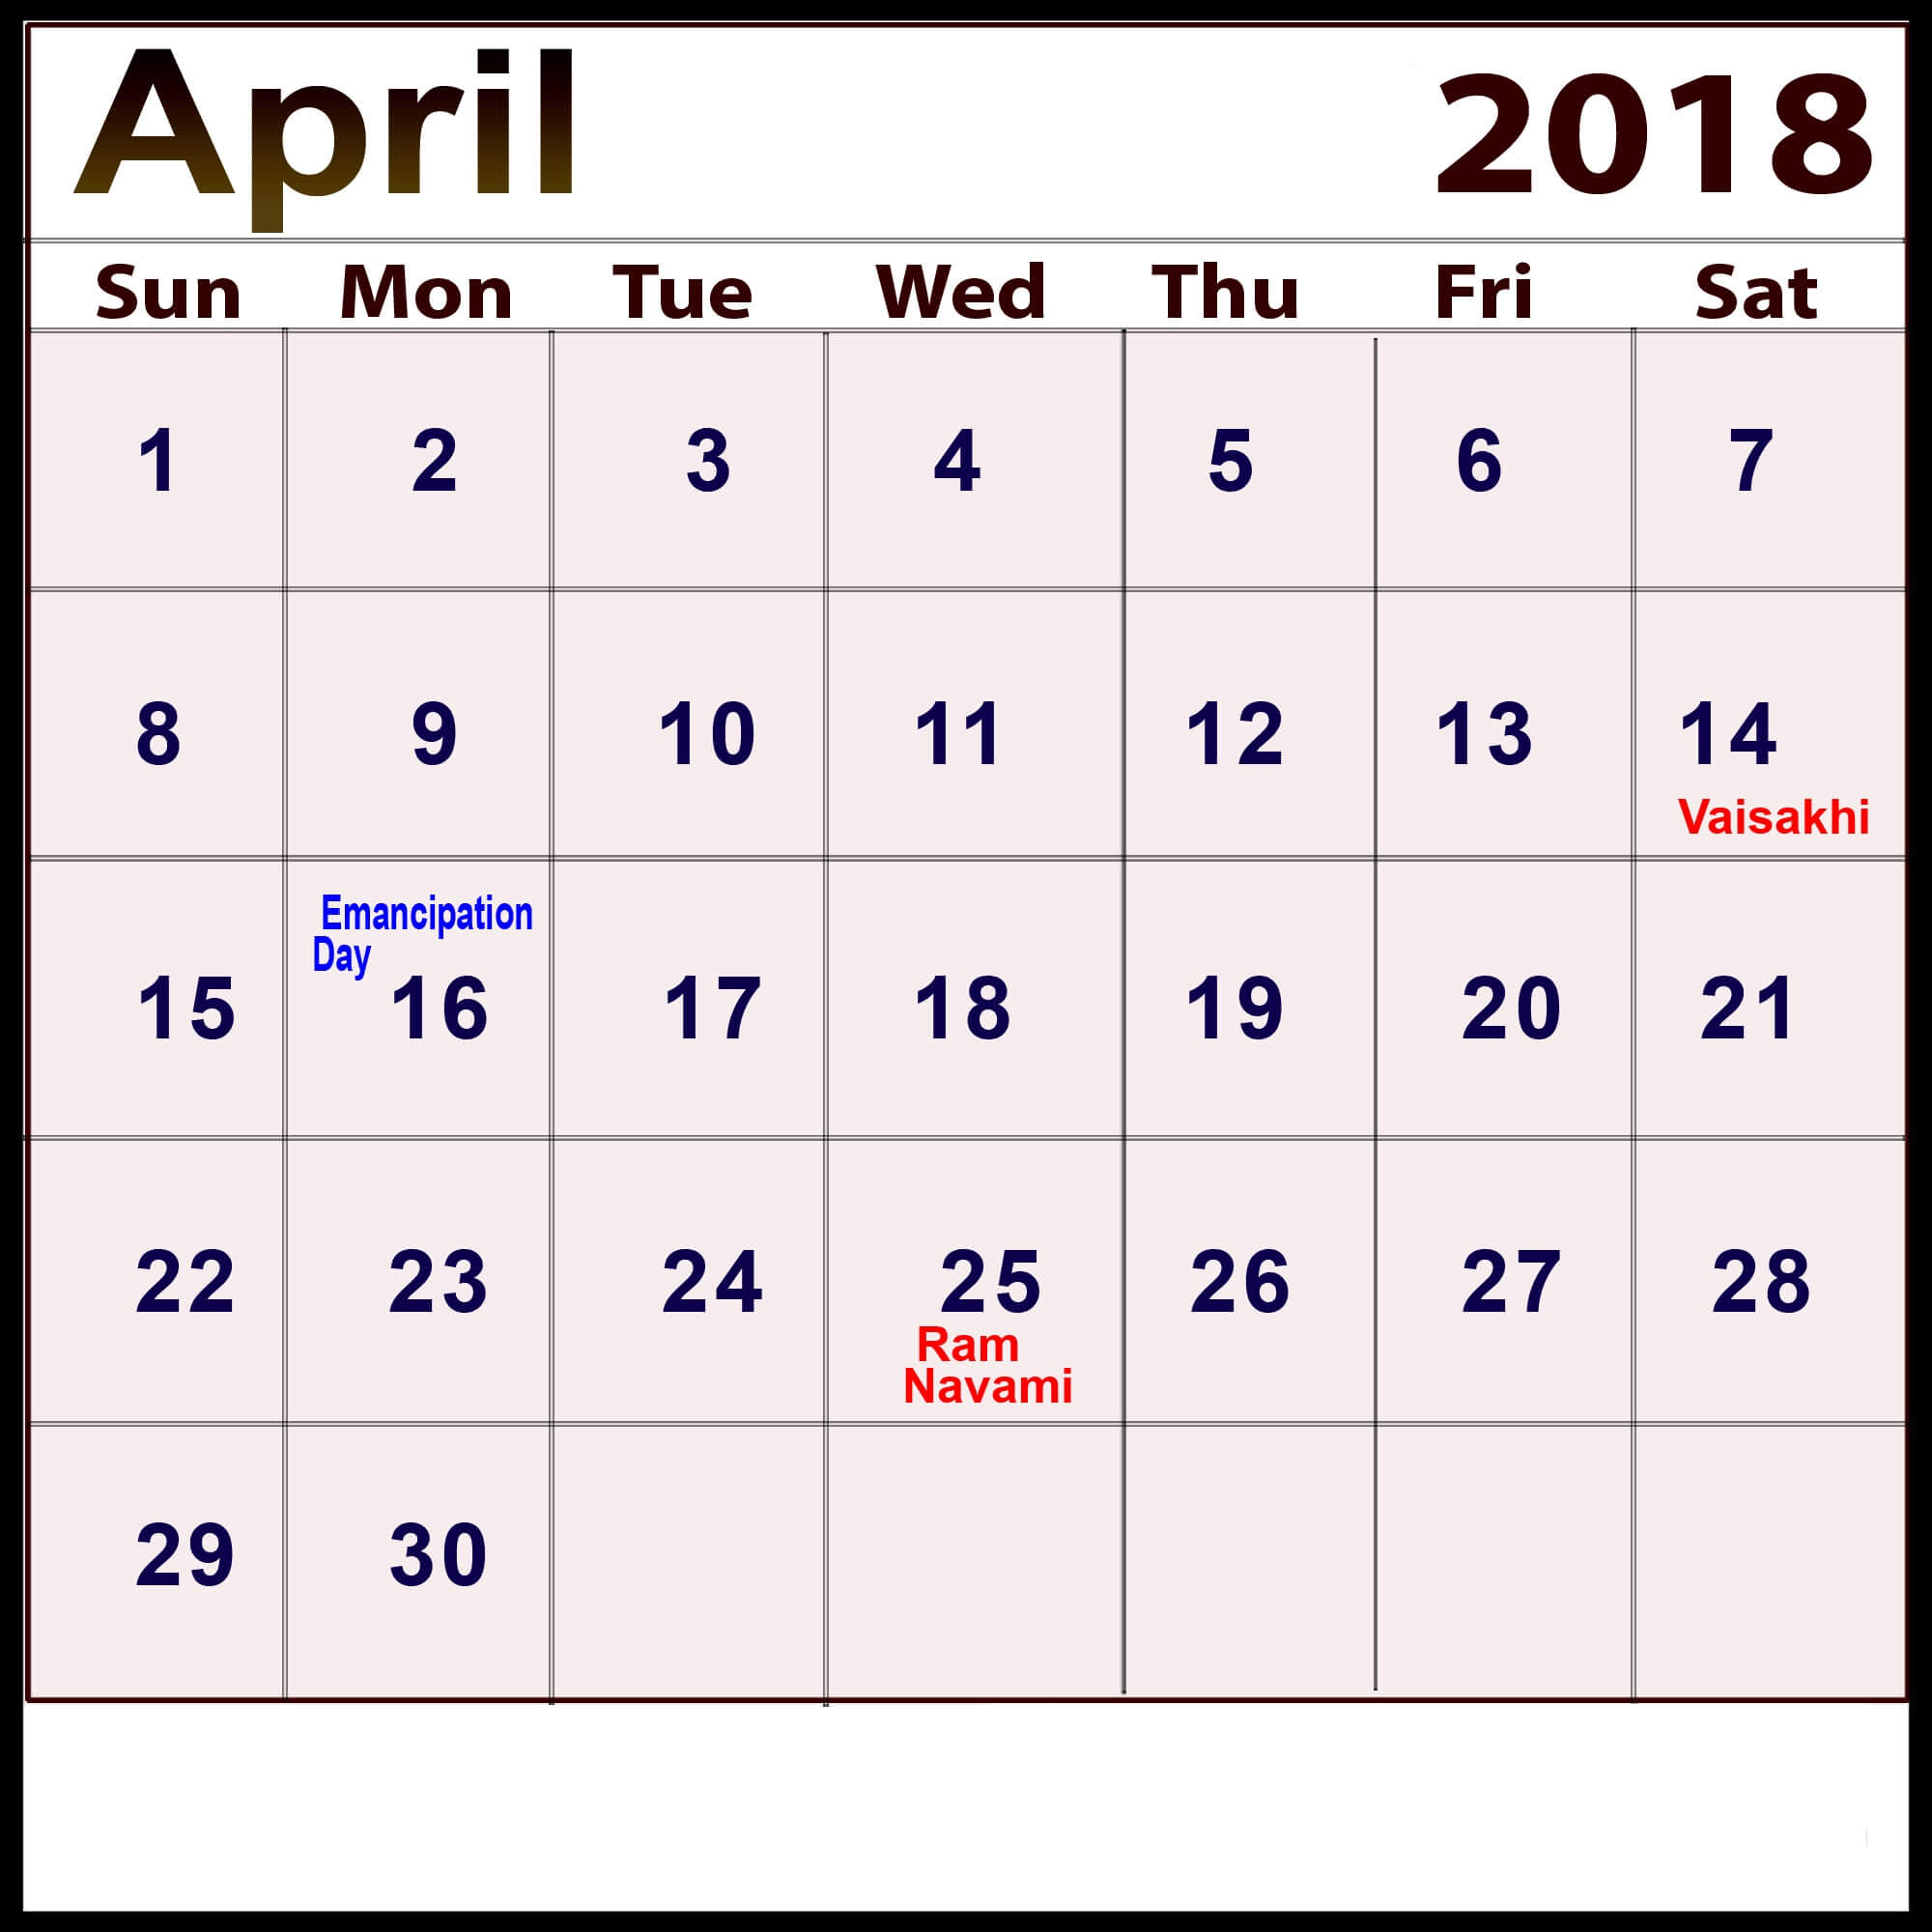 April Calendar Usa : April calendar with holidays in usa uk canada india